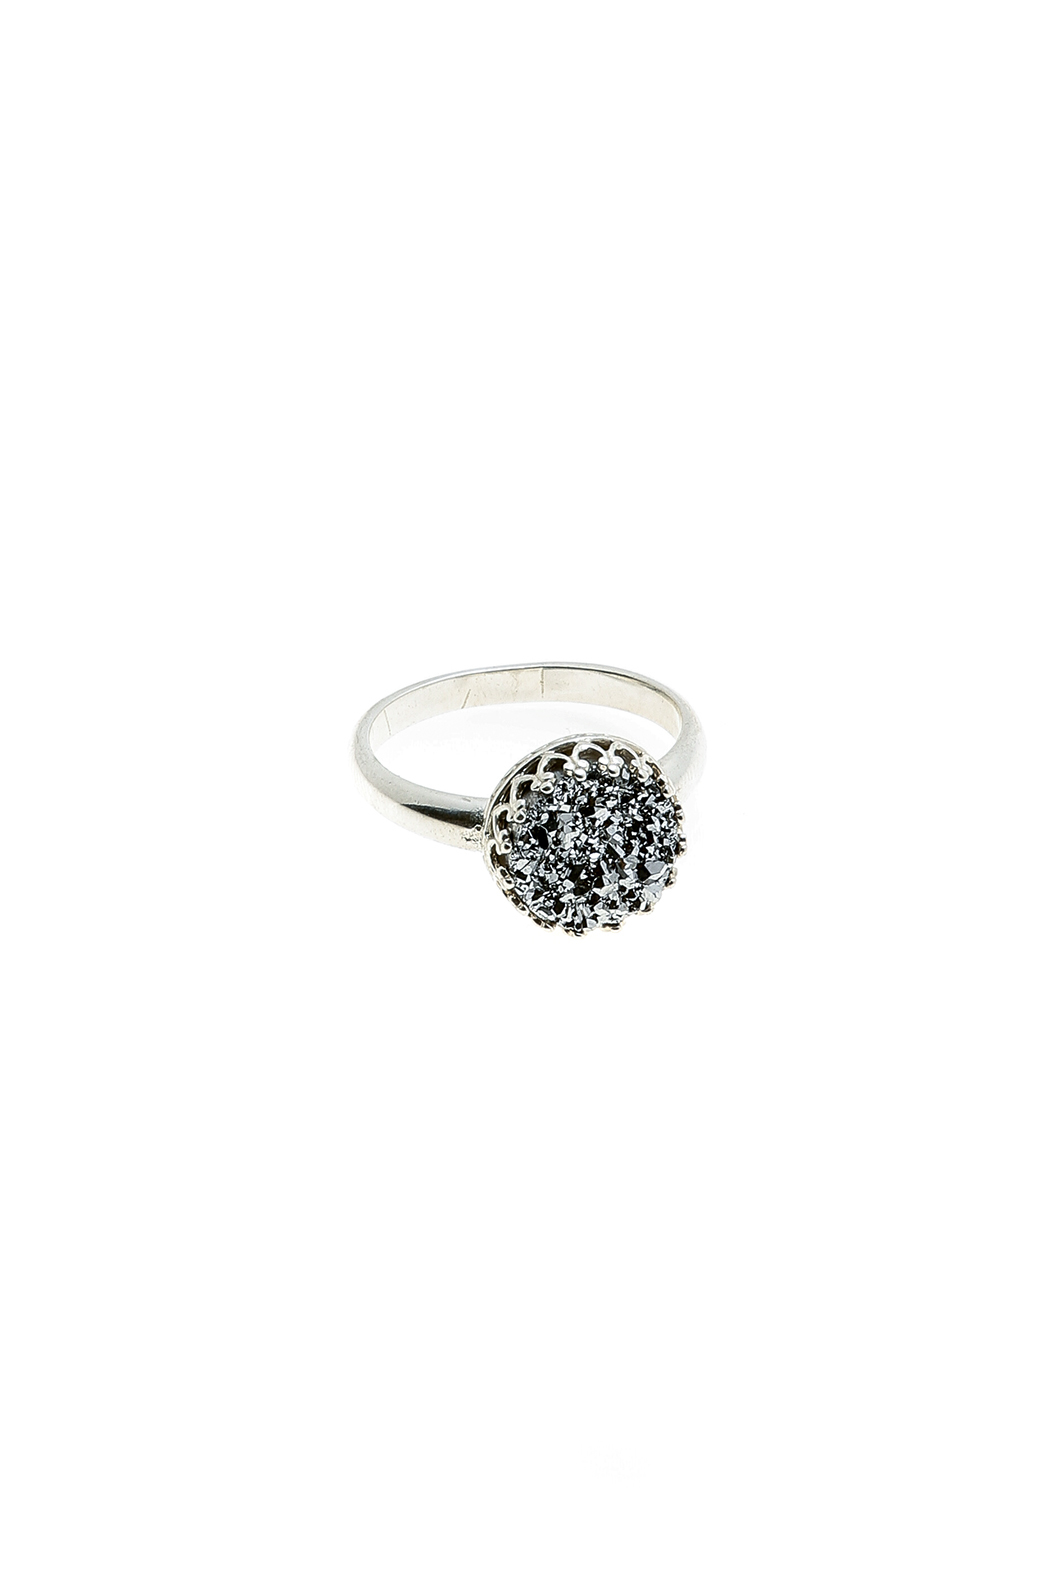 Victoria Greenhood Jewelry Design Silver Druzy Ring - Main Image